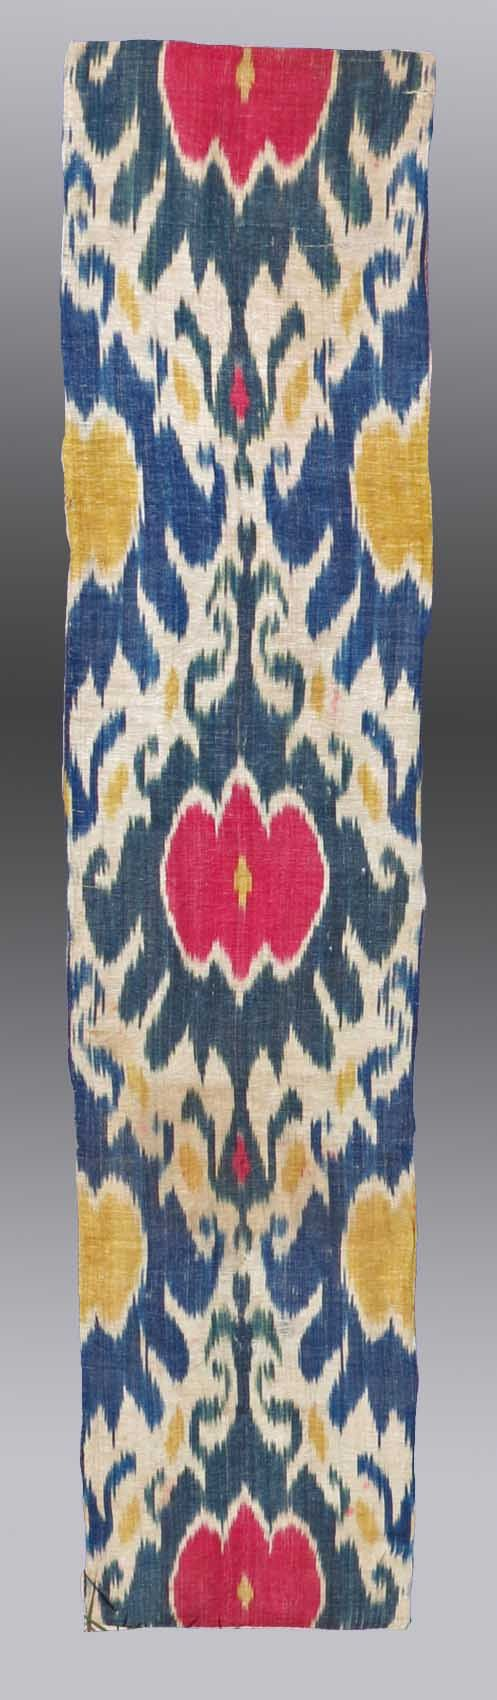 Fabric moreover teal ikat curtain panels on home decor fabric ikat - Vintage Home Decor Antique Uzbek Ikat Panel Wall Hanging Central Asia 19th C 1 5 X 4 2 Exluding The Mount